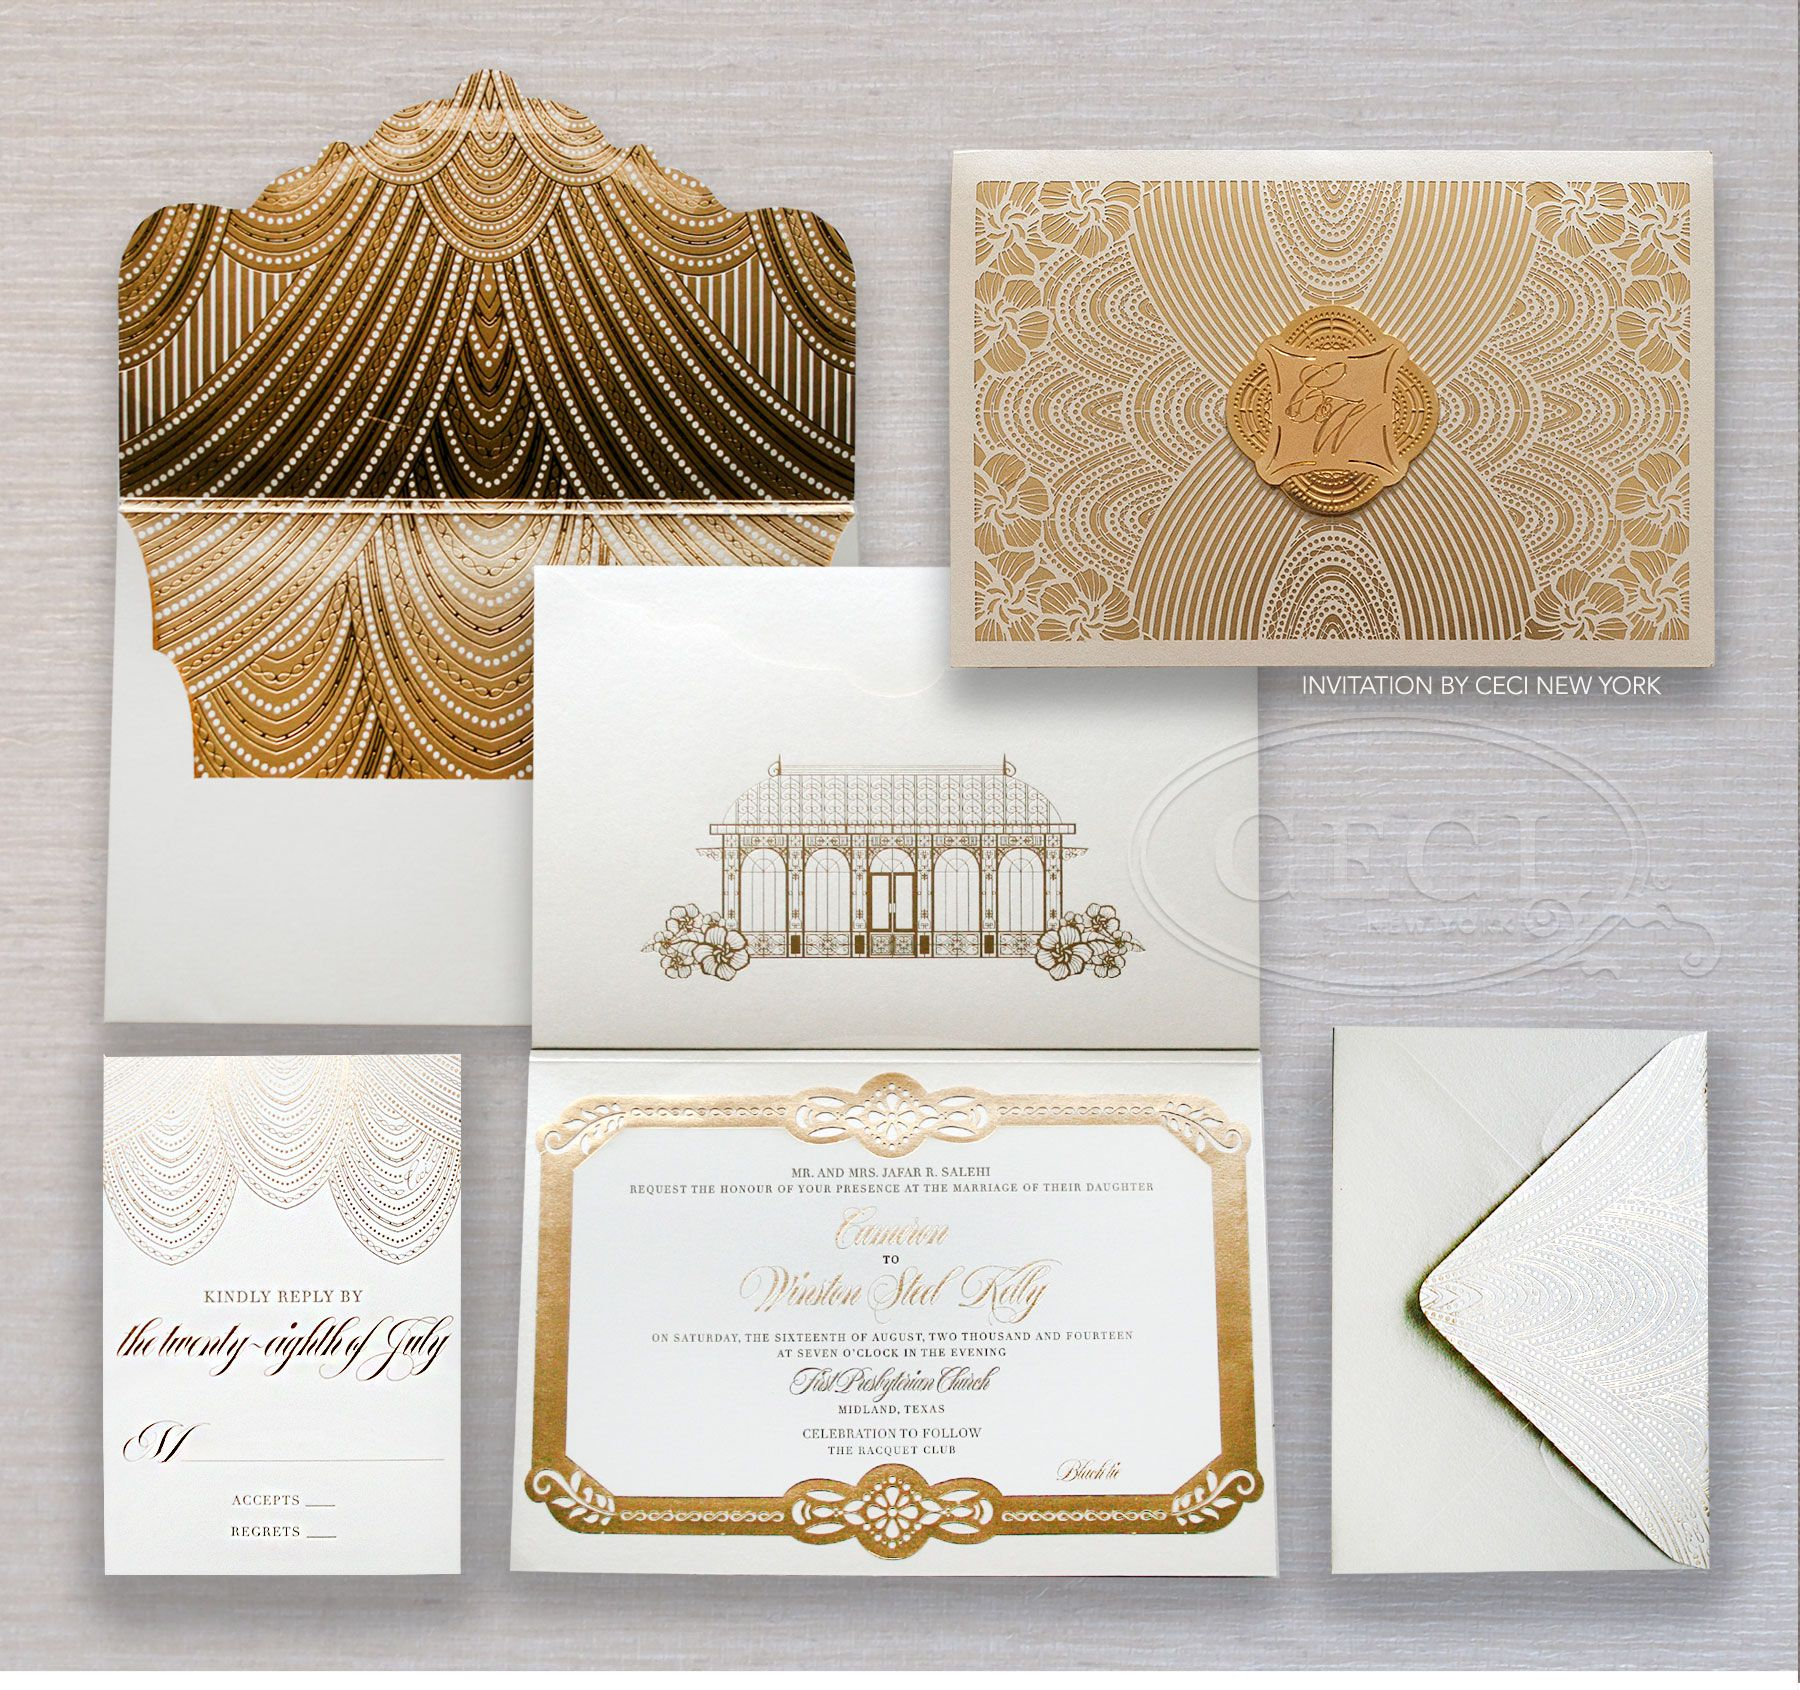 Luxury Wedding Invitations By Ceci New York Glamorous In Texas Cameron And Winston Part 1 Be Inspired S